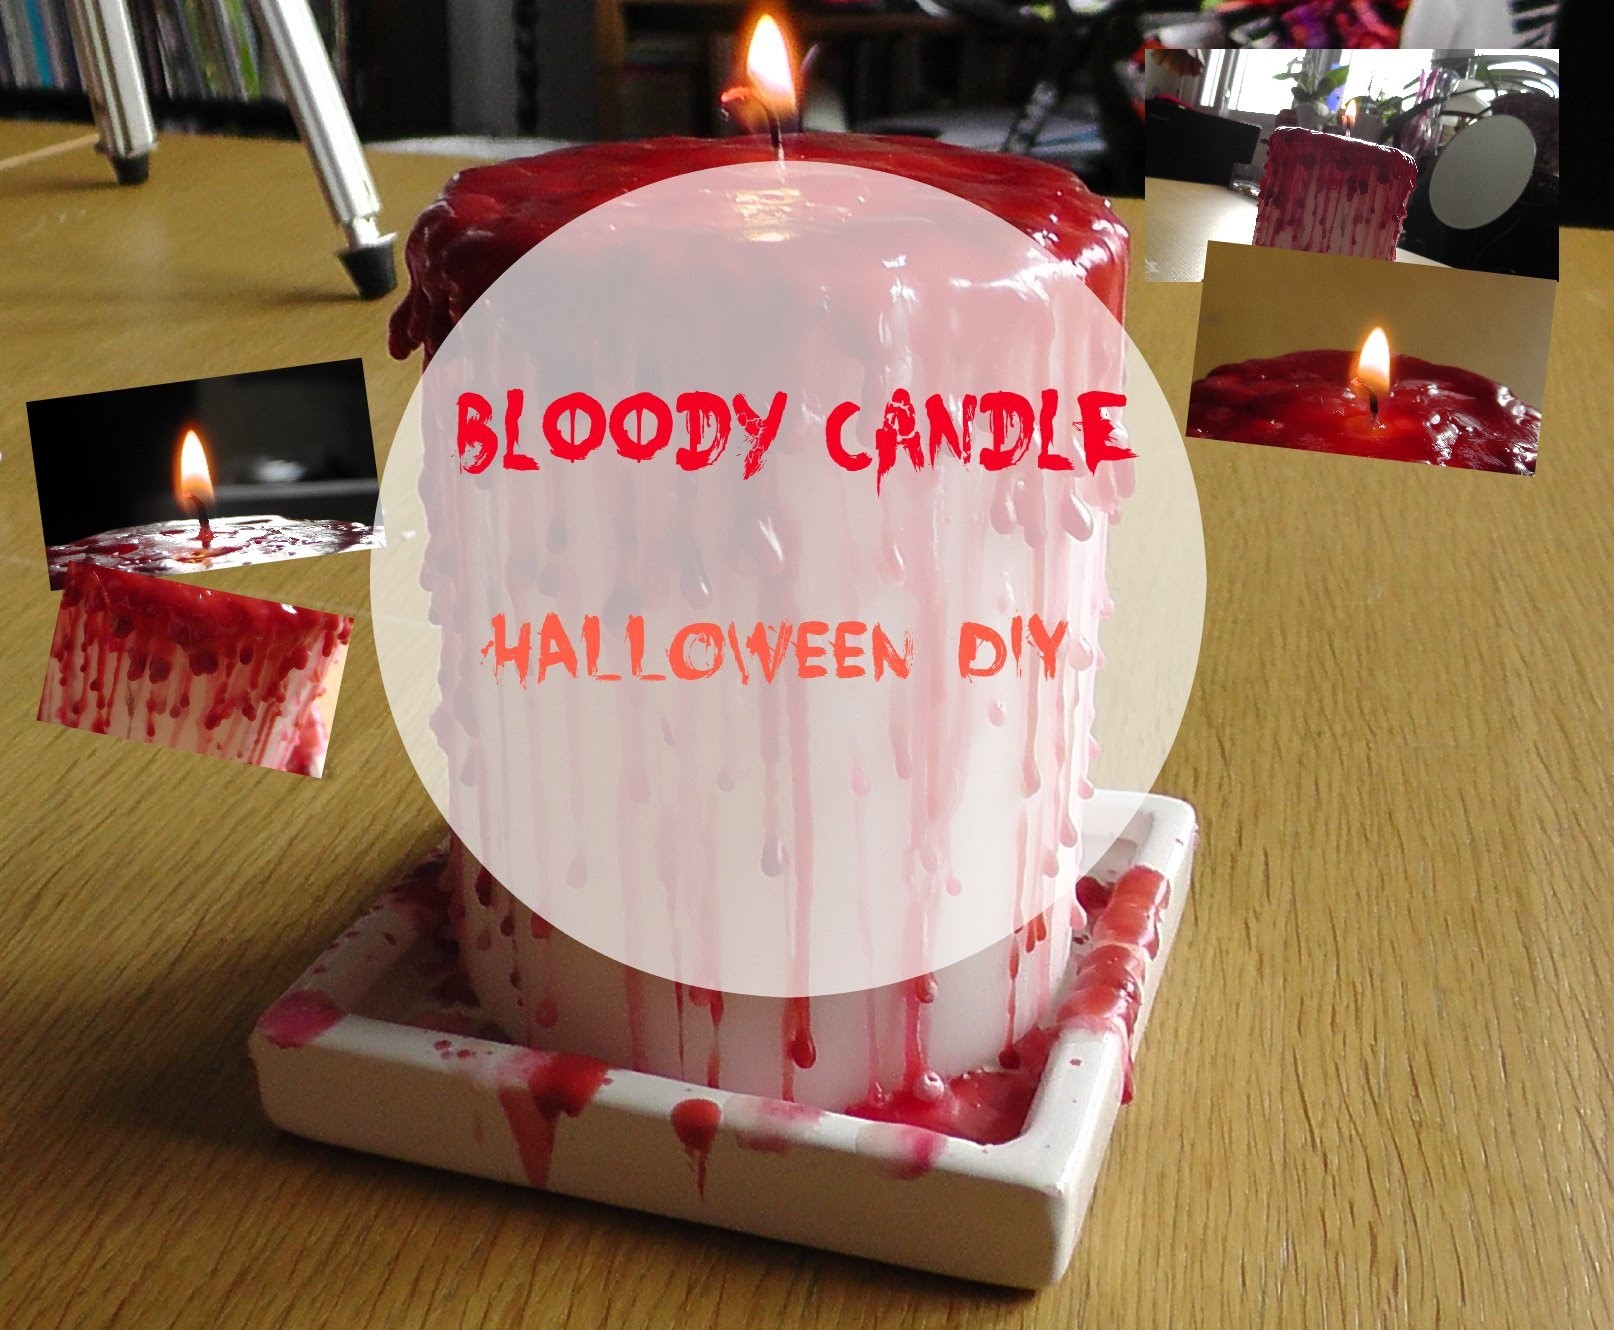 ❤Bloody Candle Halloween DIY | Egoprinsessan ❤